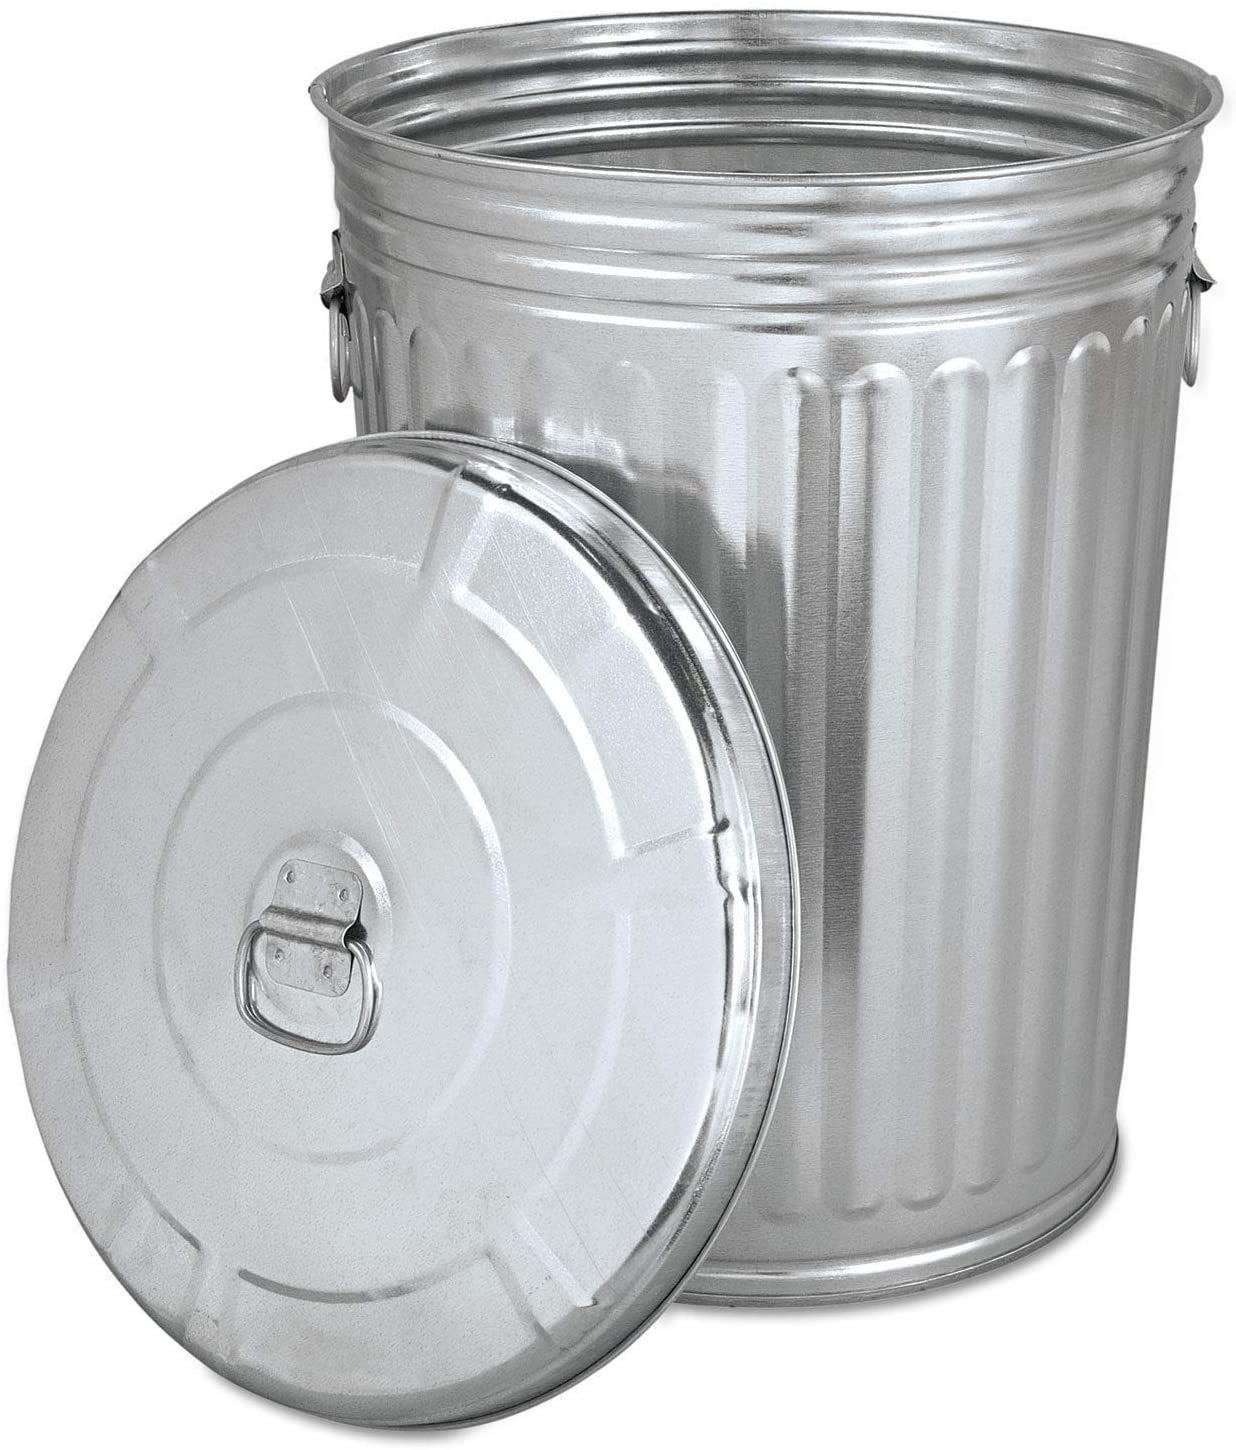 Be super welcome KCHEX Trash can with lid - Pre-Galvanized Rapid rise Lid Rou Can